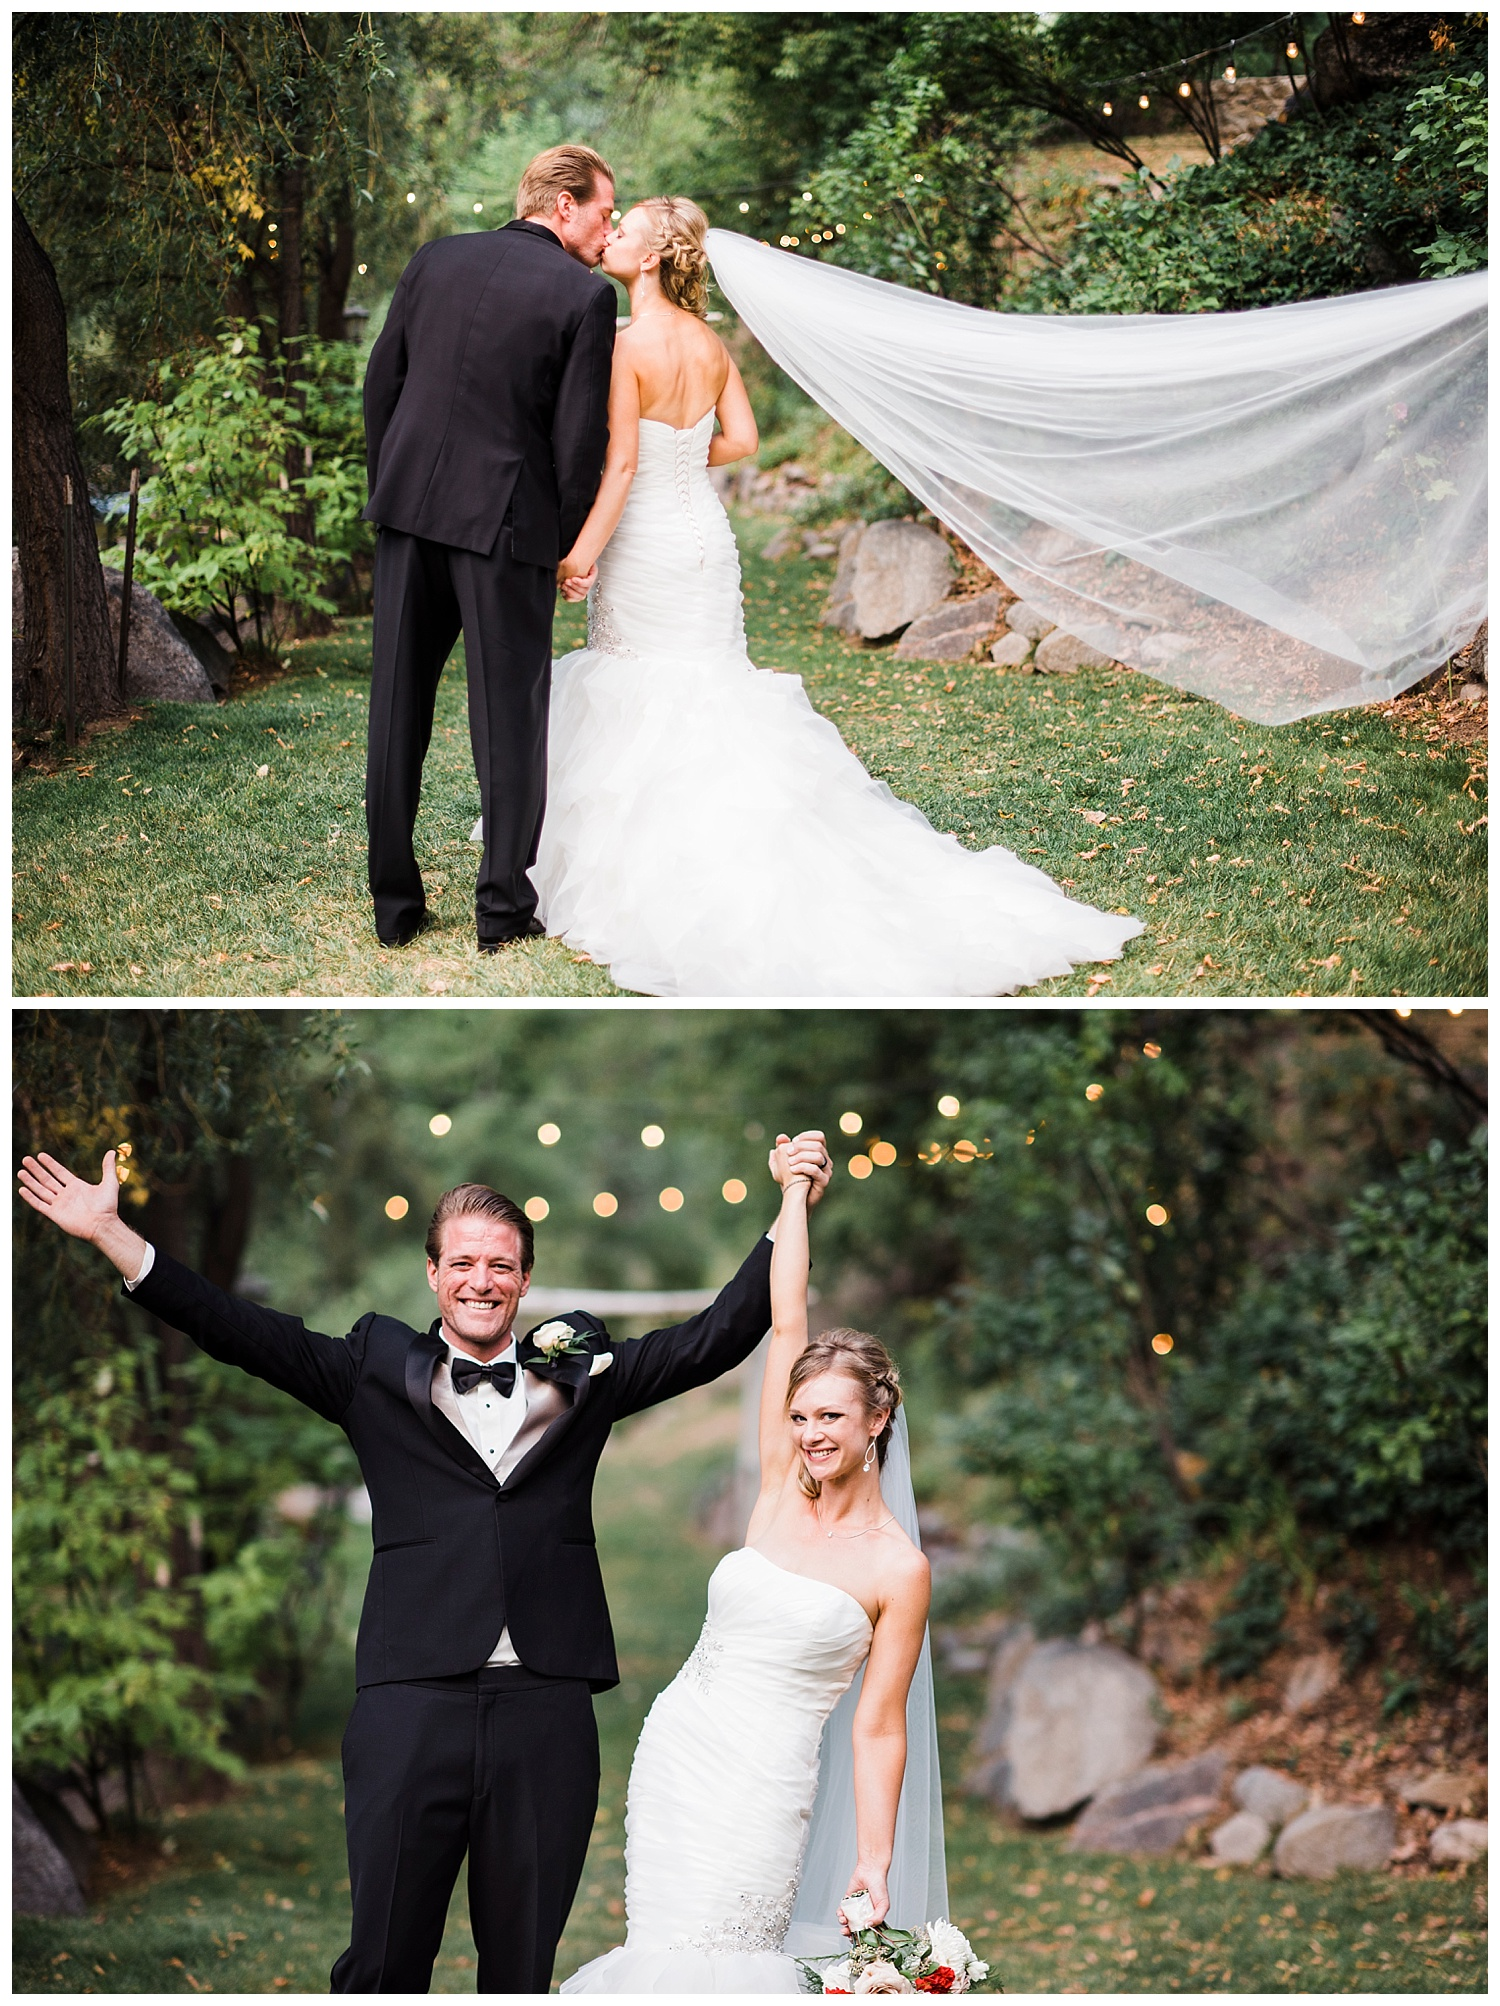 Wedgewood_Boulder_Creek_Wedding_Venue_Colorado_Photographer_Apollo_Fields_046.jpg